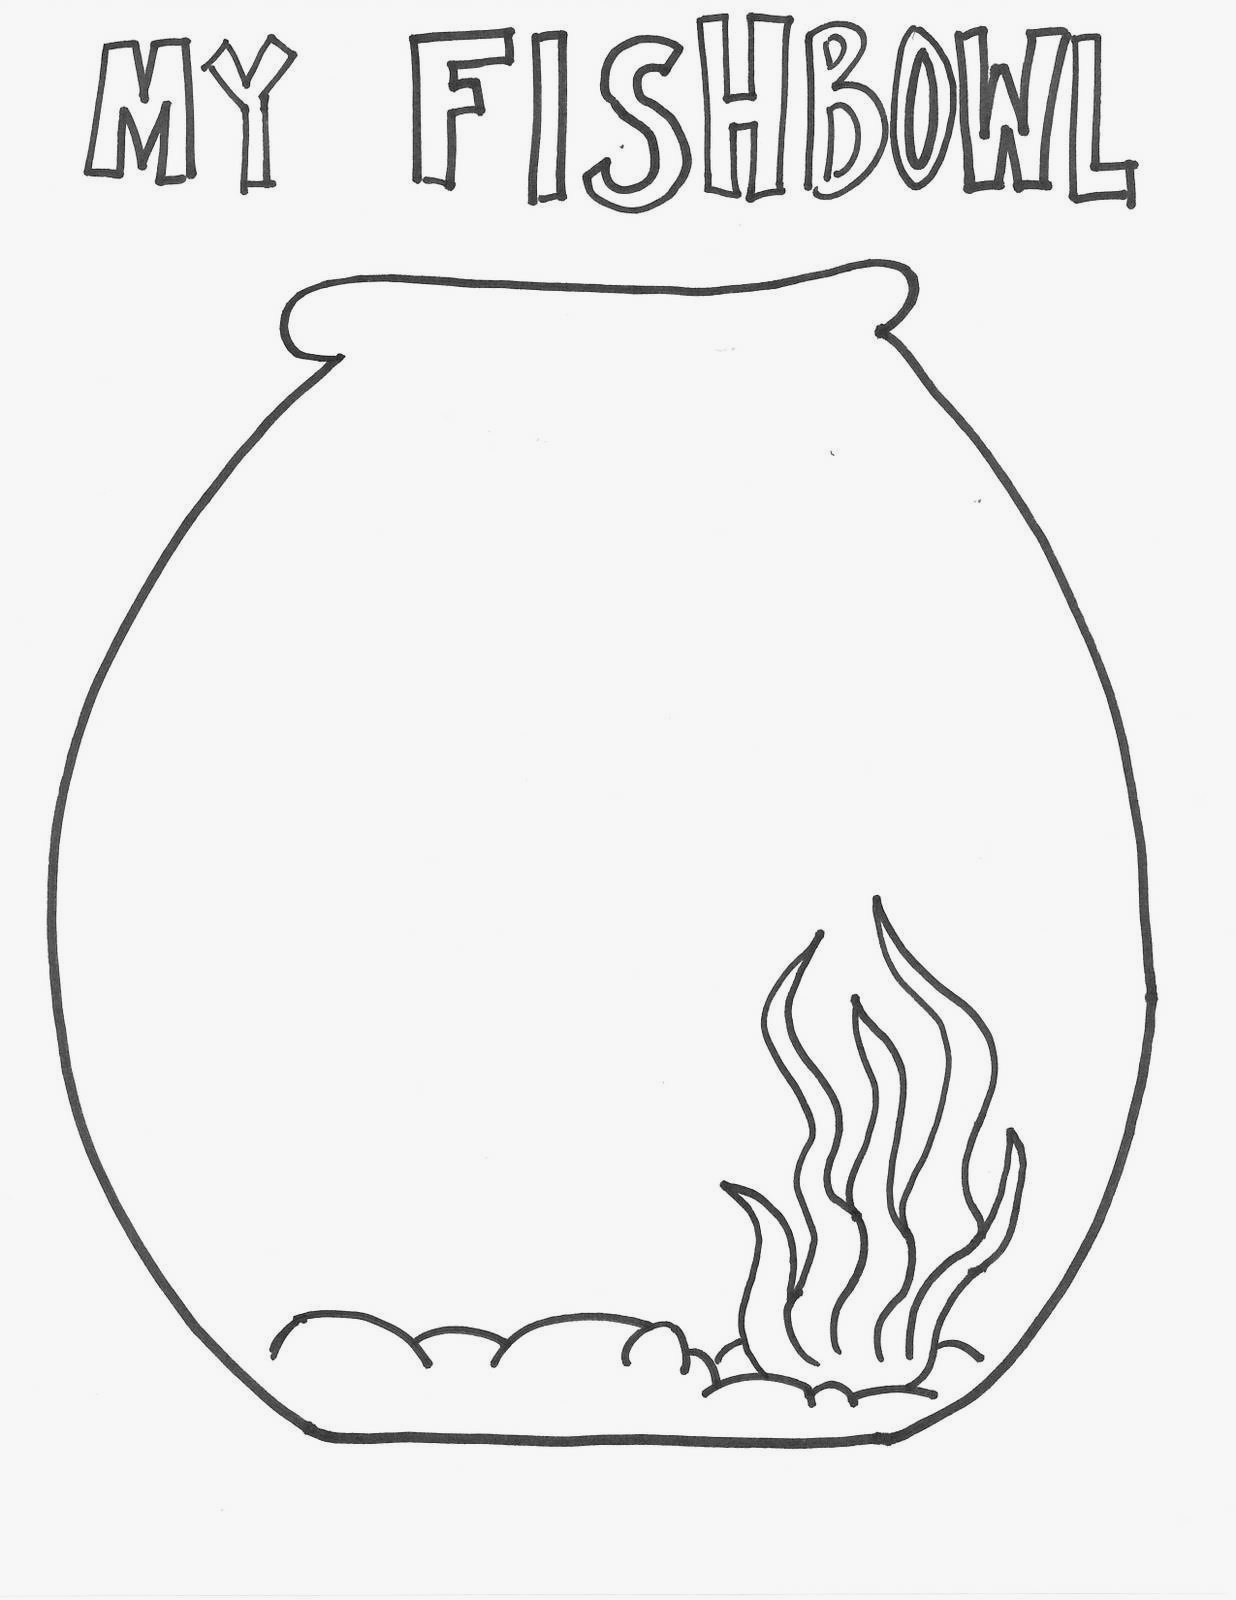 cheap fish bowl vases of school anime coloring page nice anime coloring pages awesome fish within anime coloring pages awesome fish bowl coloring page pin od